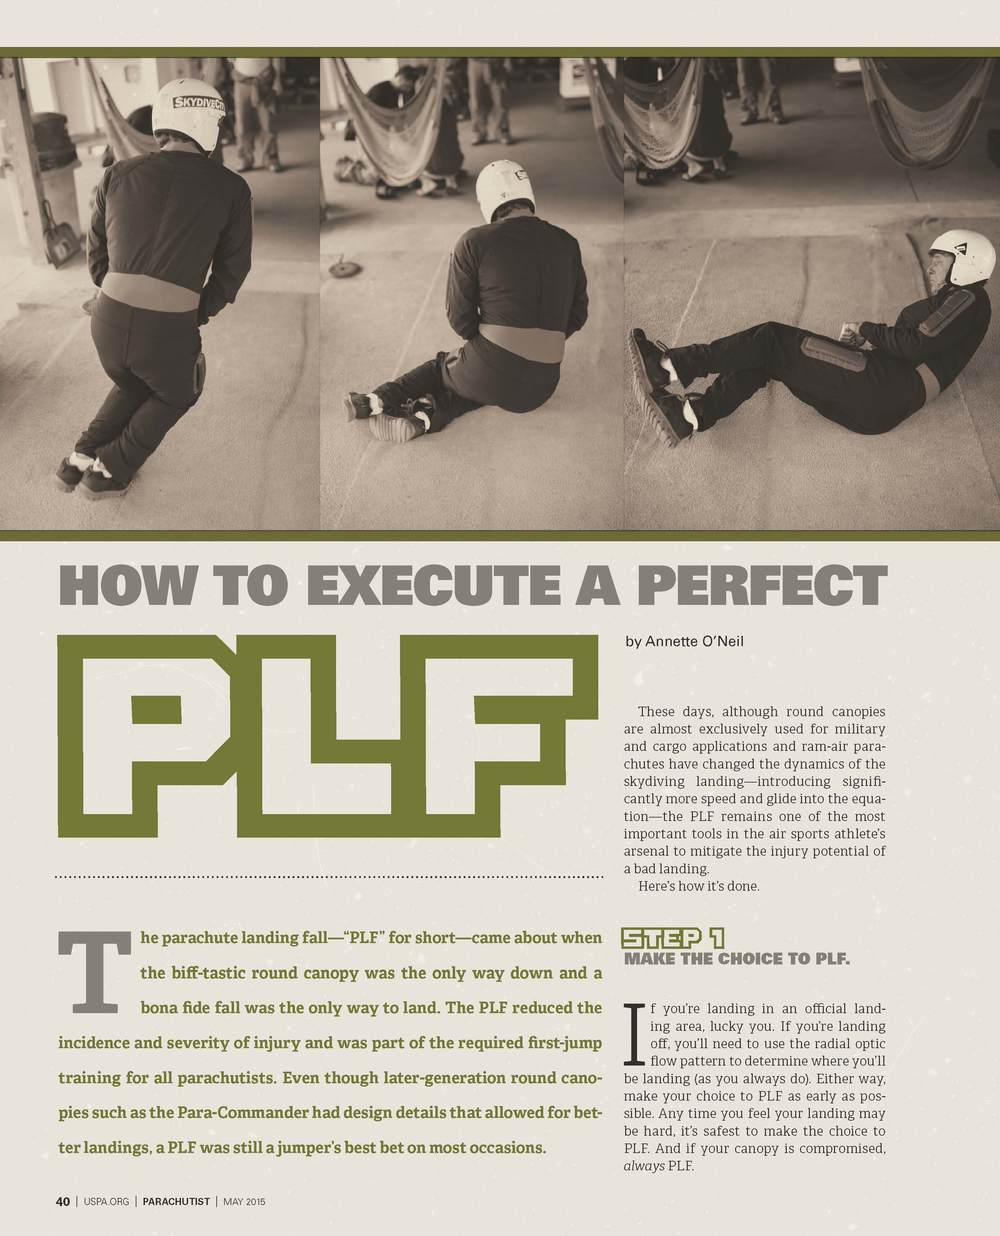 How to Execute a Perfect PLF